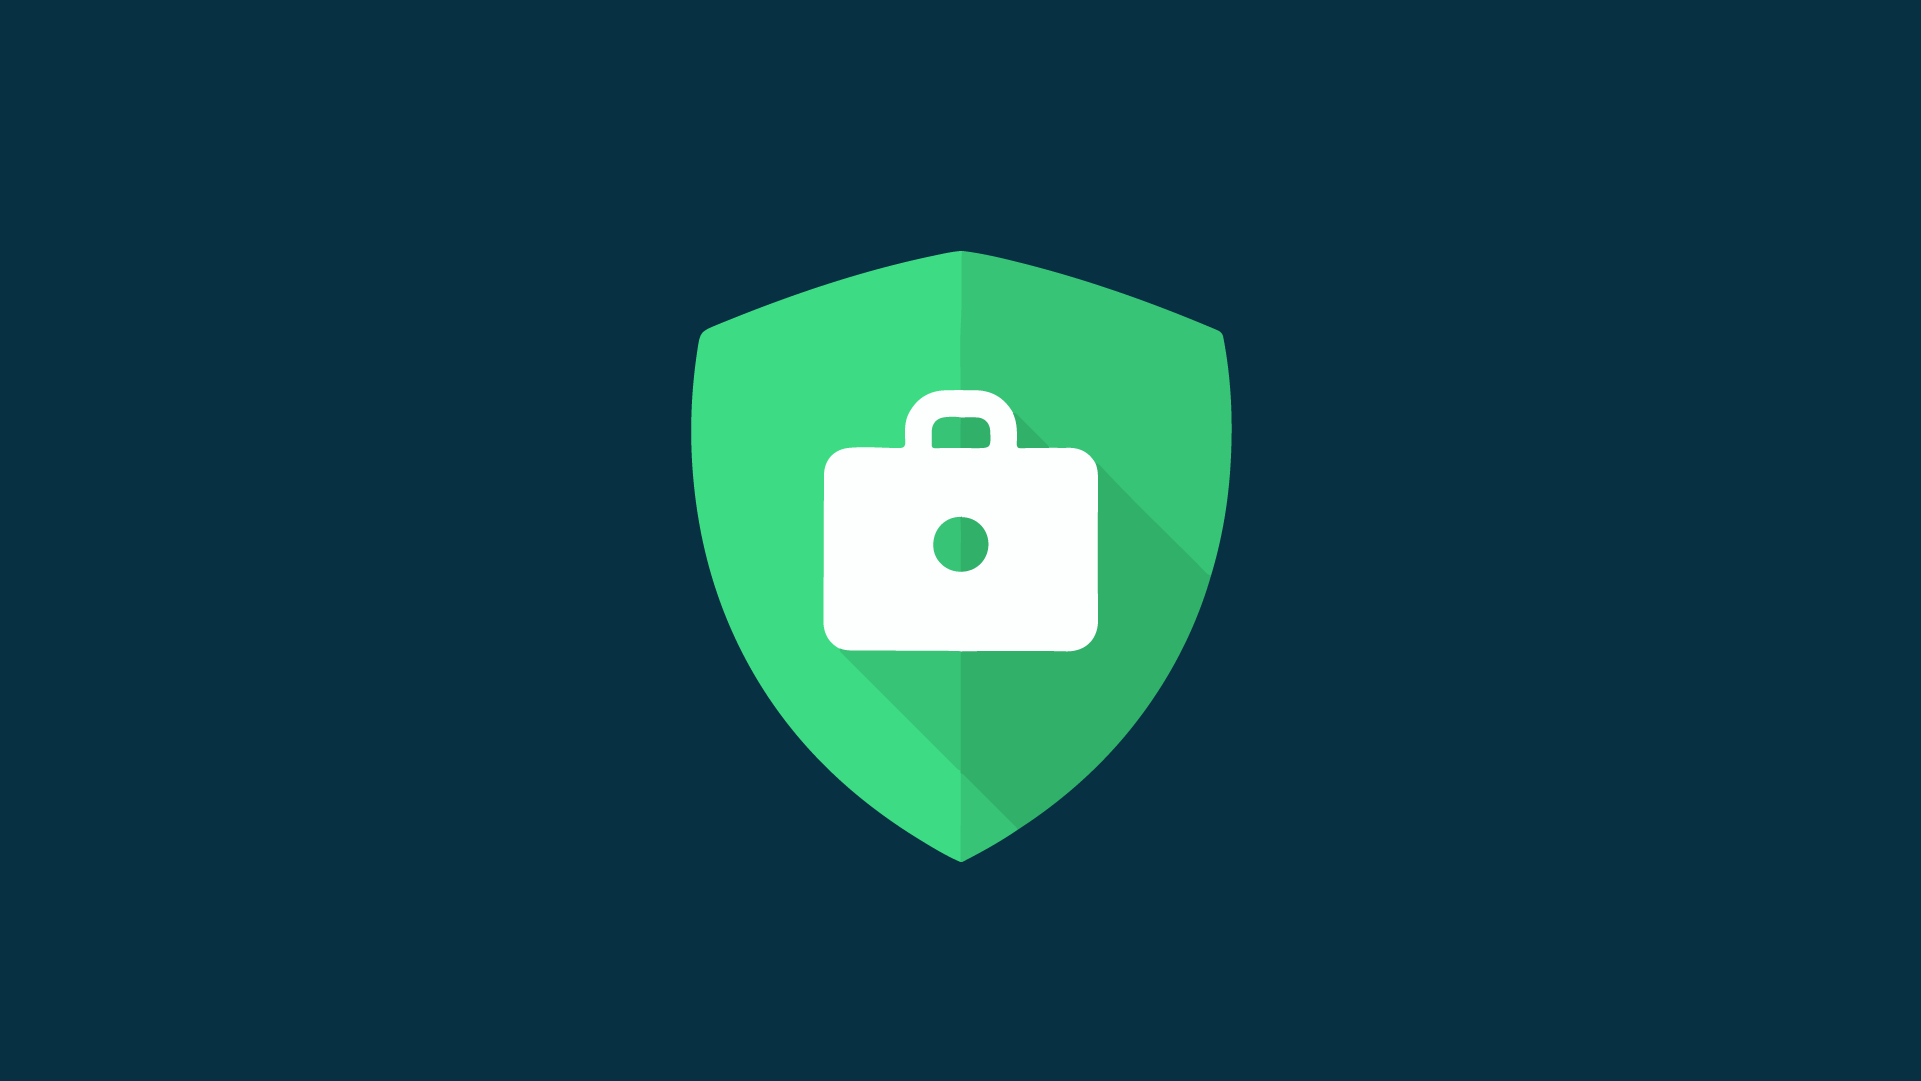 Google's making it easier for small businesses to get enterprise-grade mobile security - Android Police